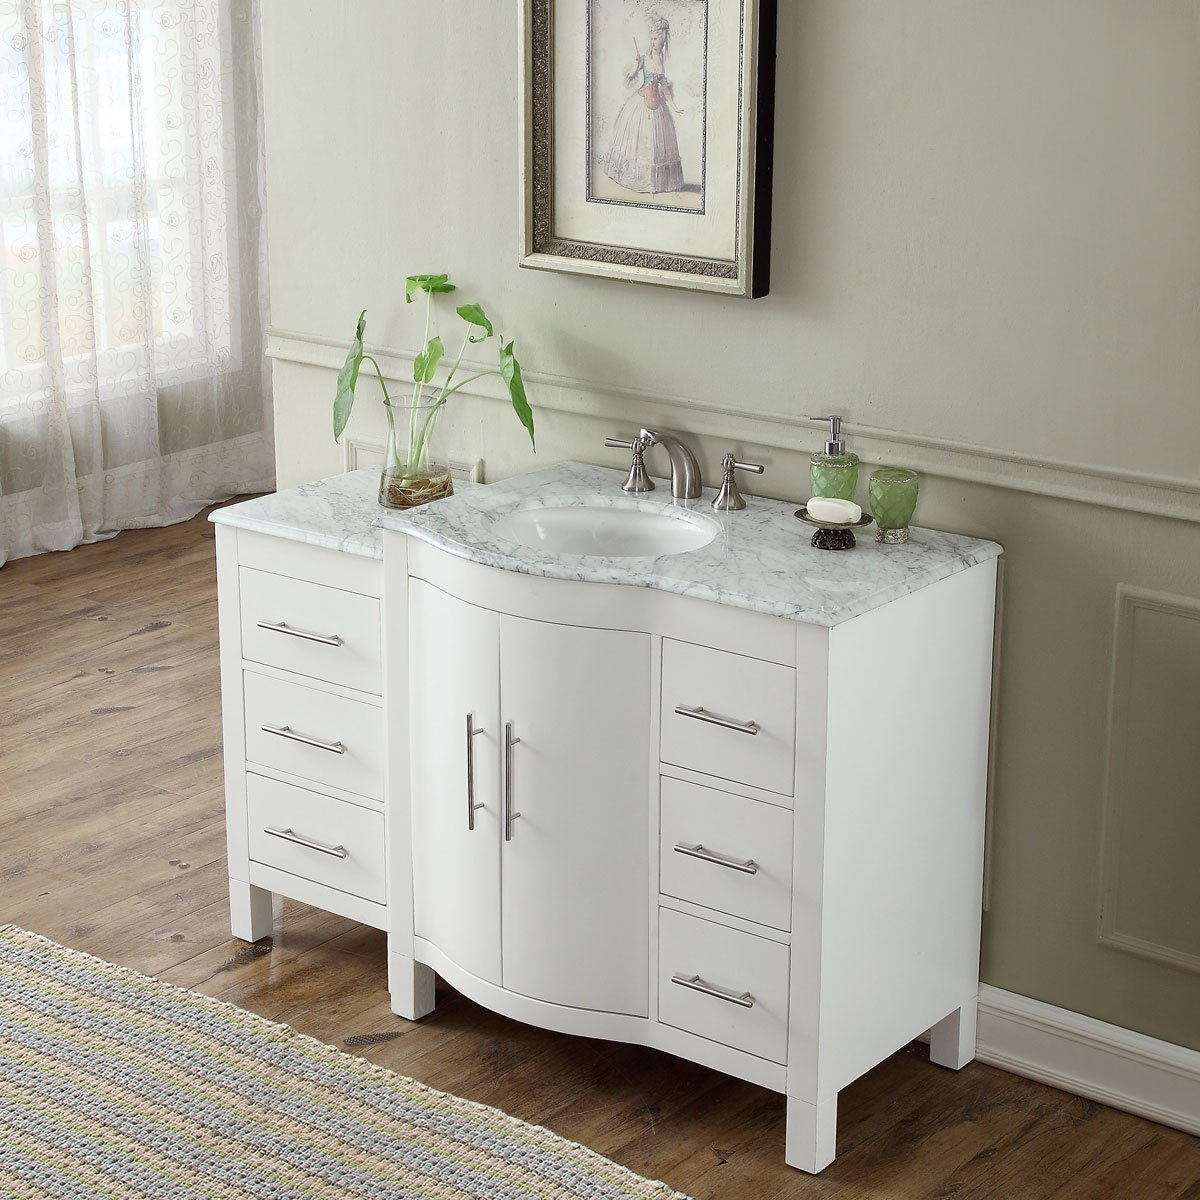 54 inch single sink contemporary bathroom vanity cabinet white finish carrara white marble Marble top bathroom vanities